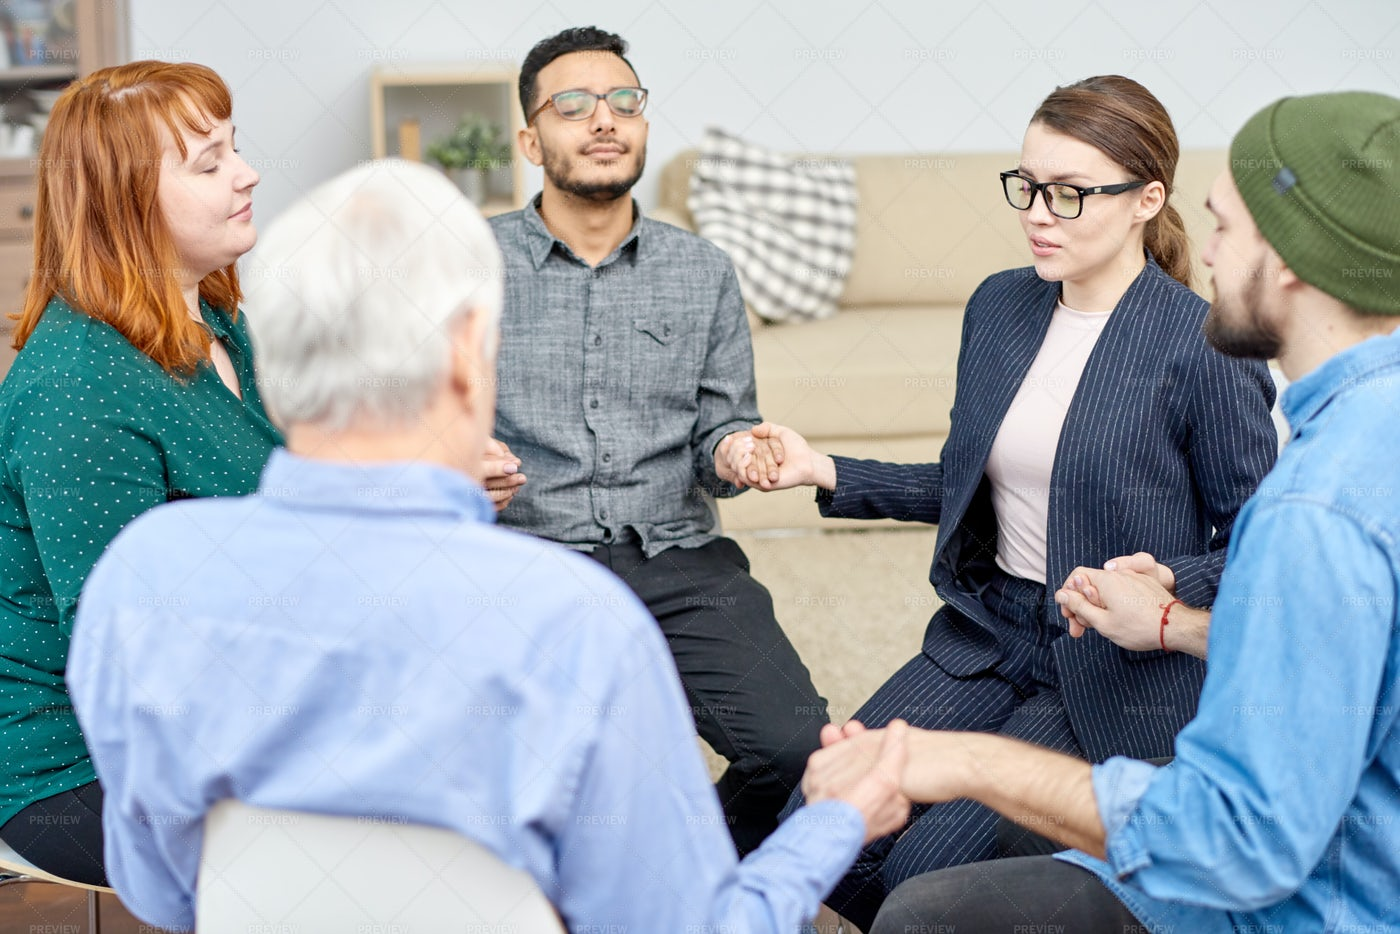 Encouraging Members Of Support...: Stock Photos